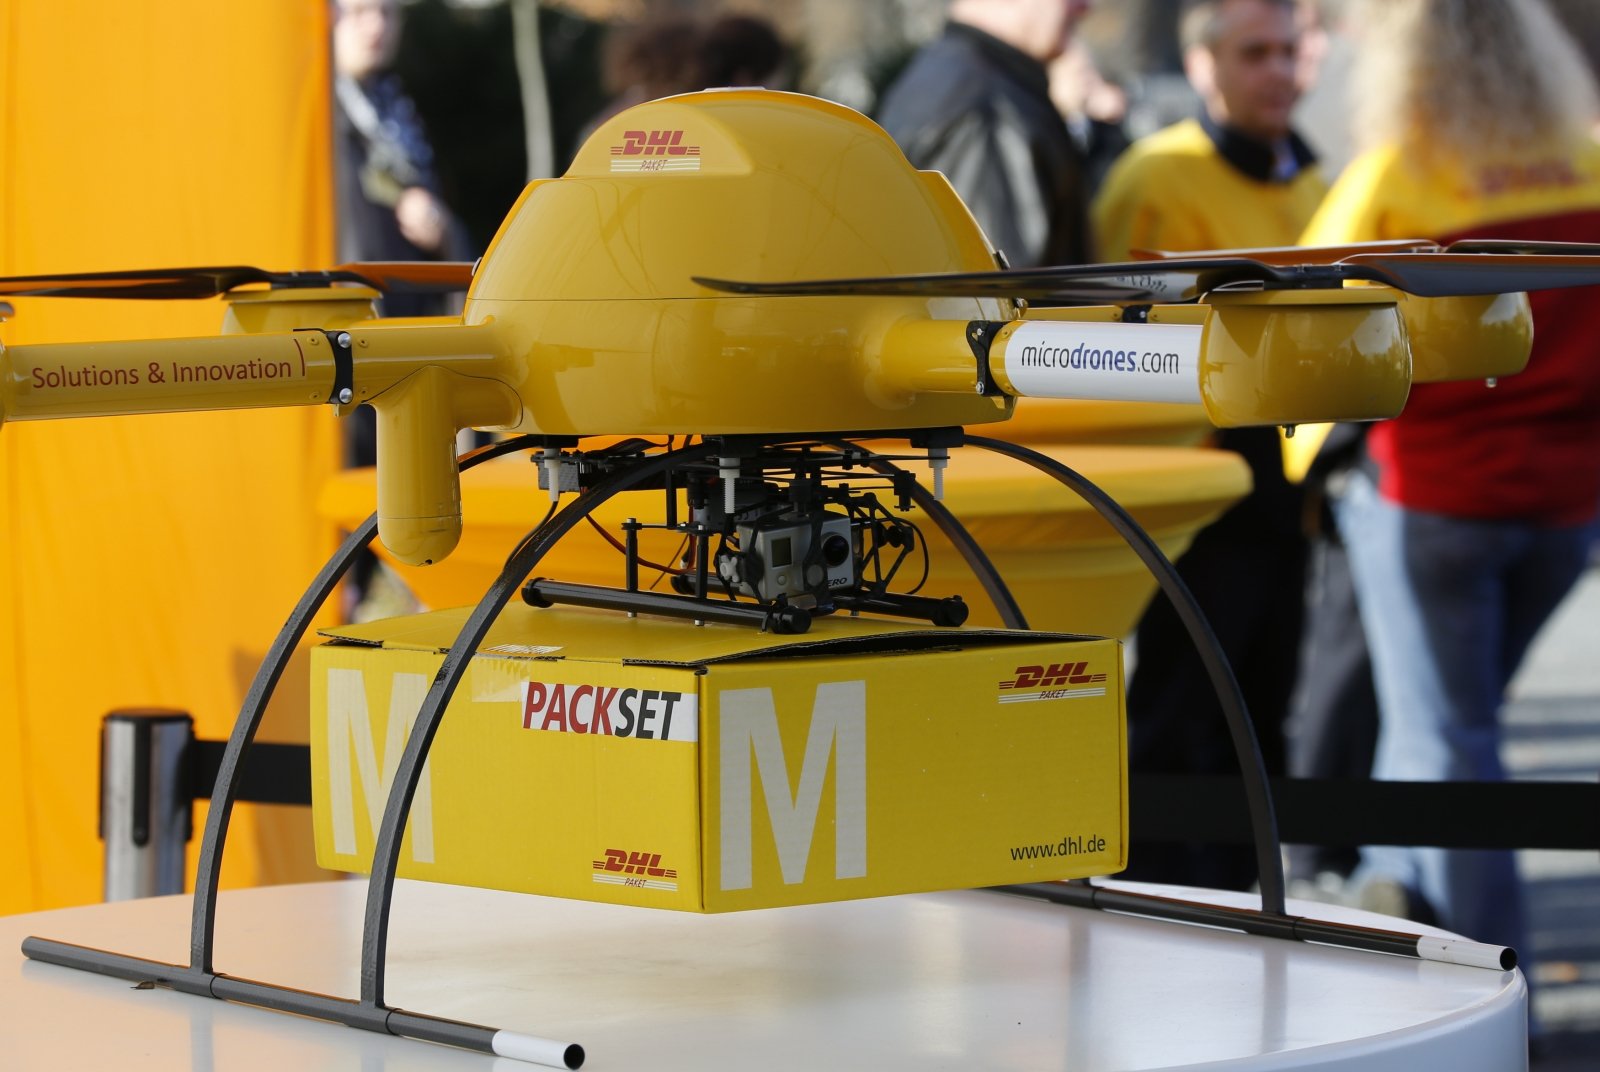 DHL\'s Paketkopter drone - a new month-long trial will see the drone being flown over 7.5 miles to deliver medication to a remote German island